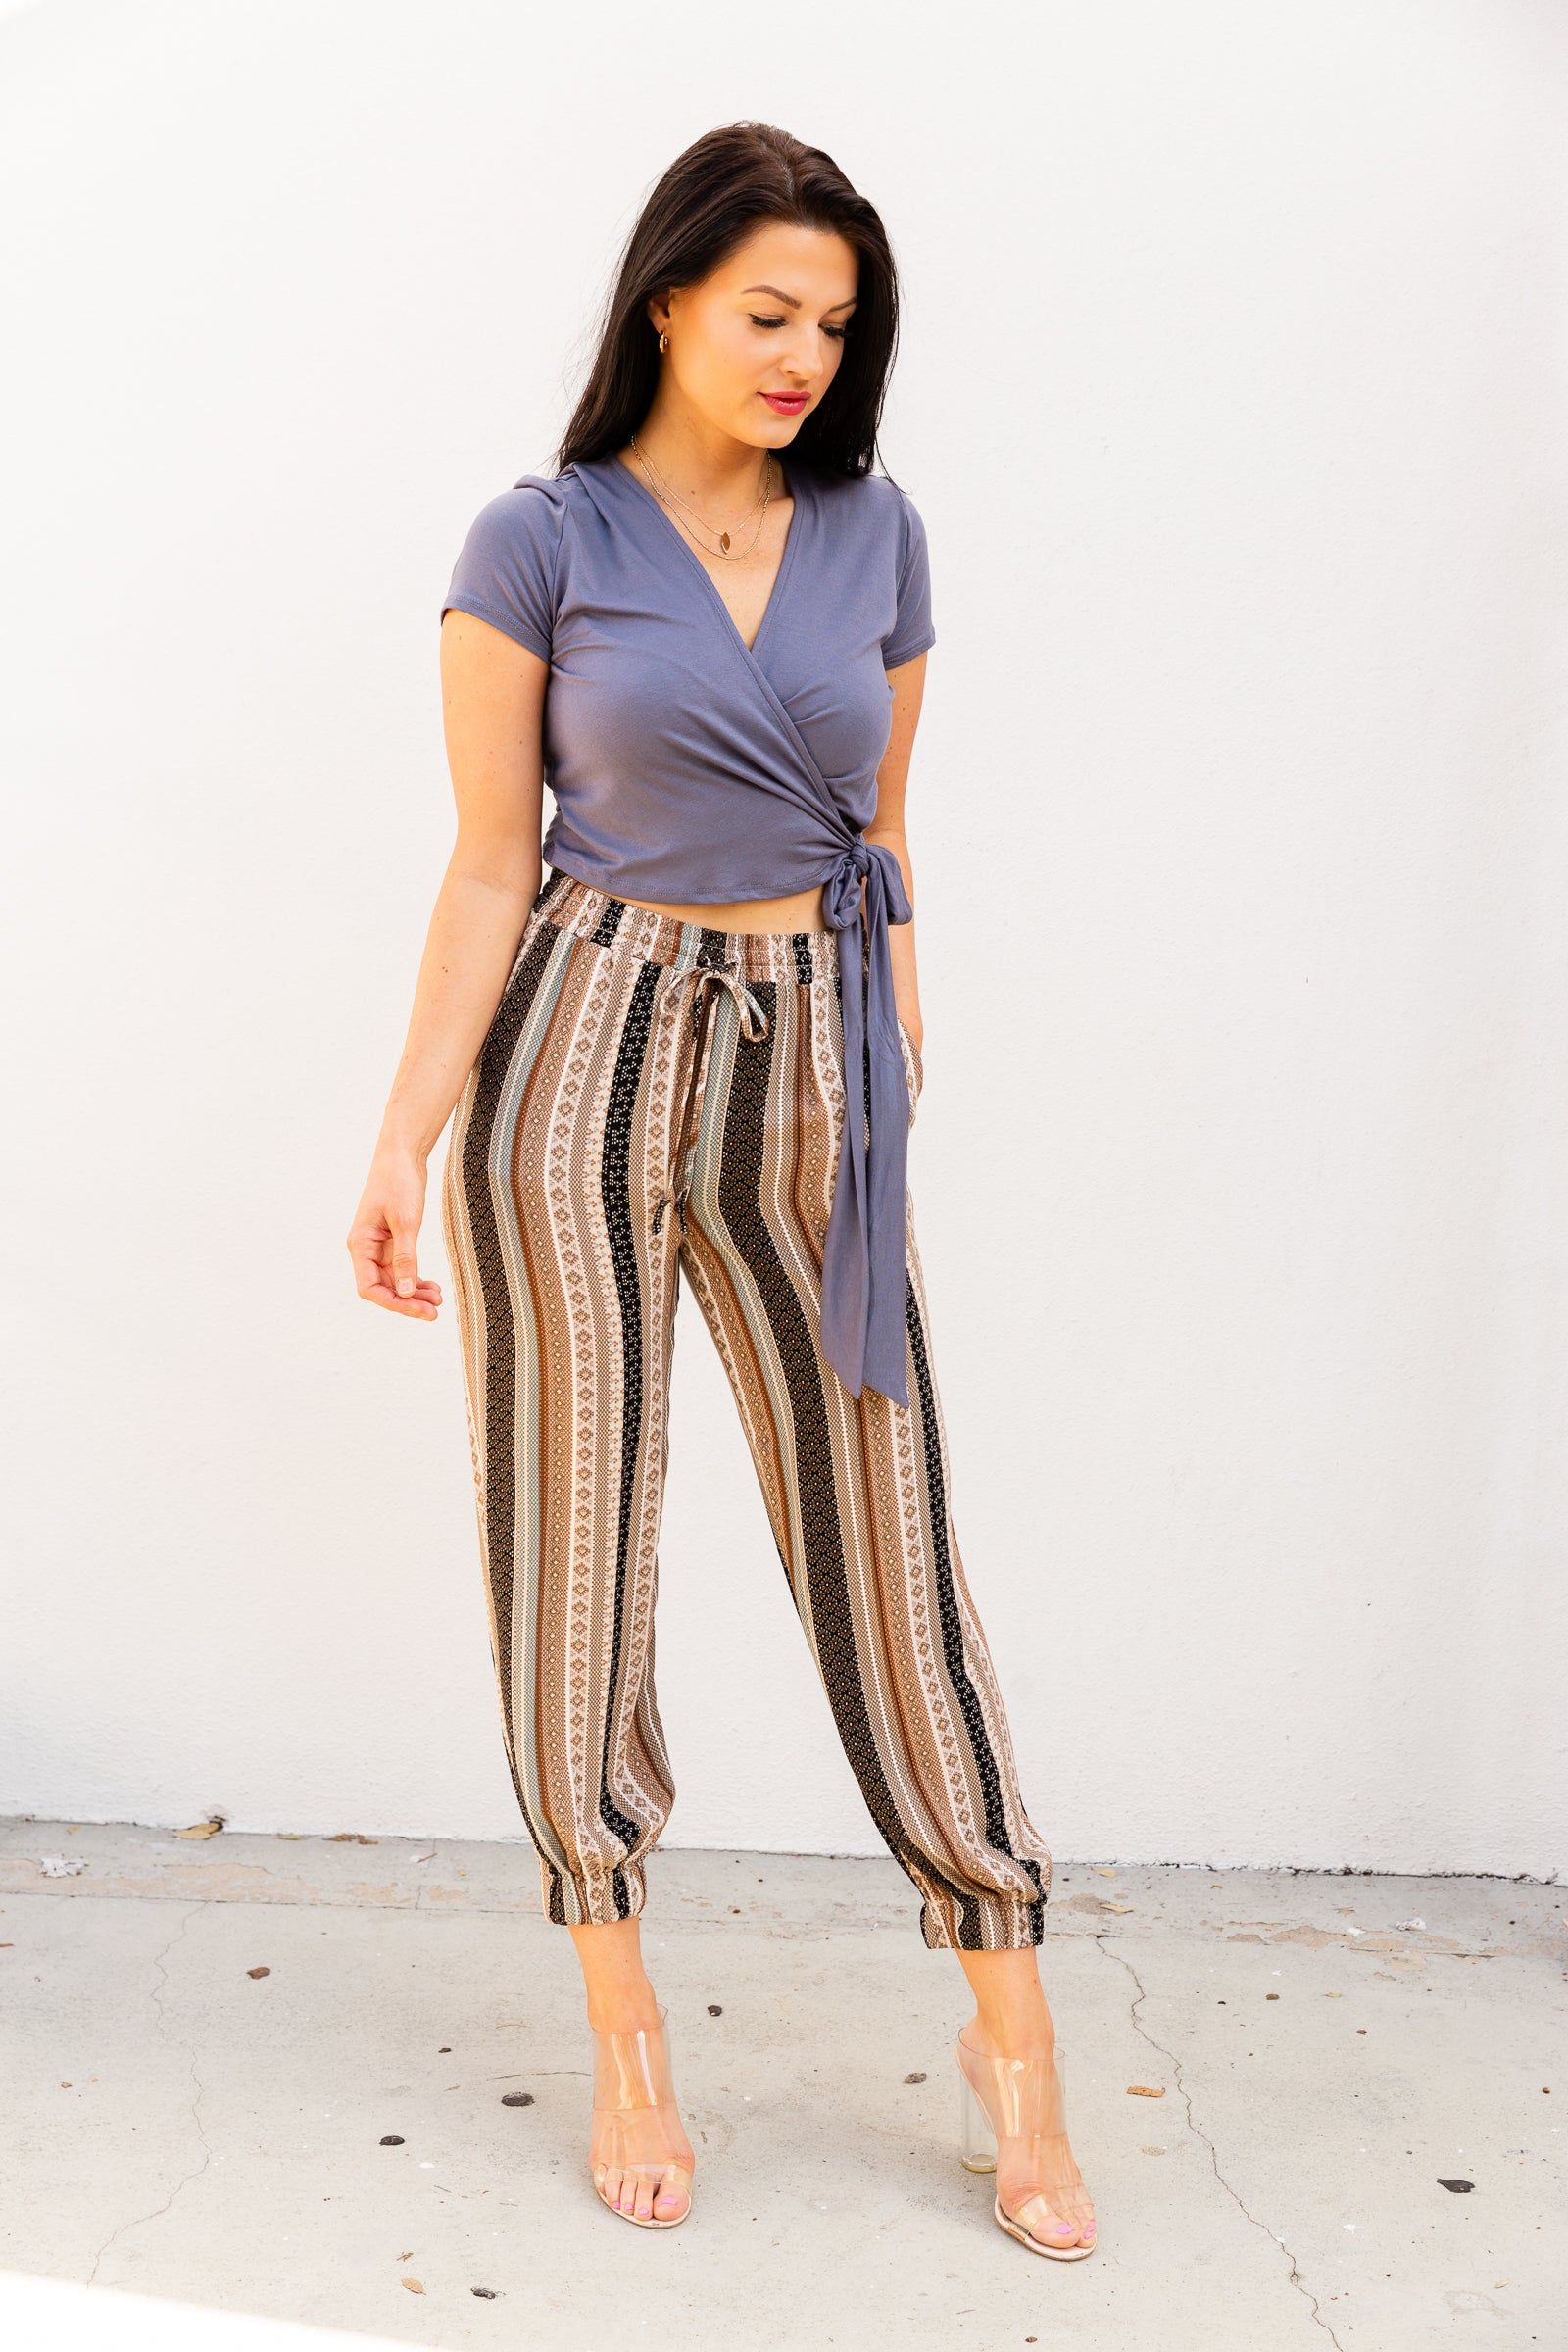 These striped joggers have an elastic waistband with a functional drawstring tie that leads down to relaxed-fitting pants with side pockets and elastic cuffed hems at the ankles.